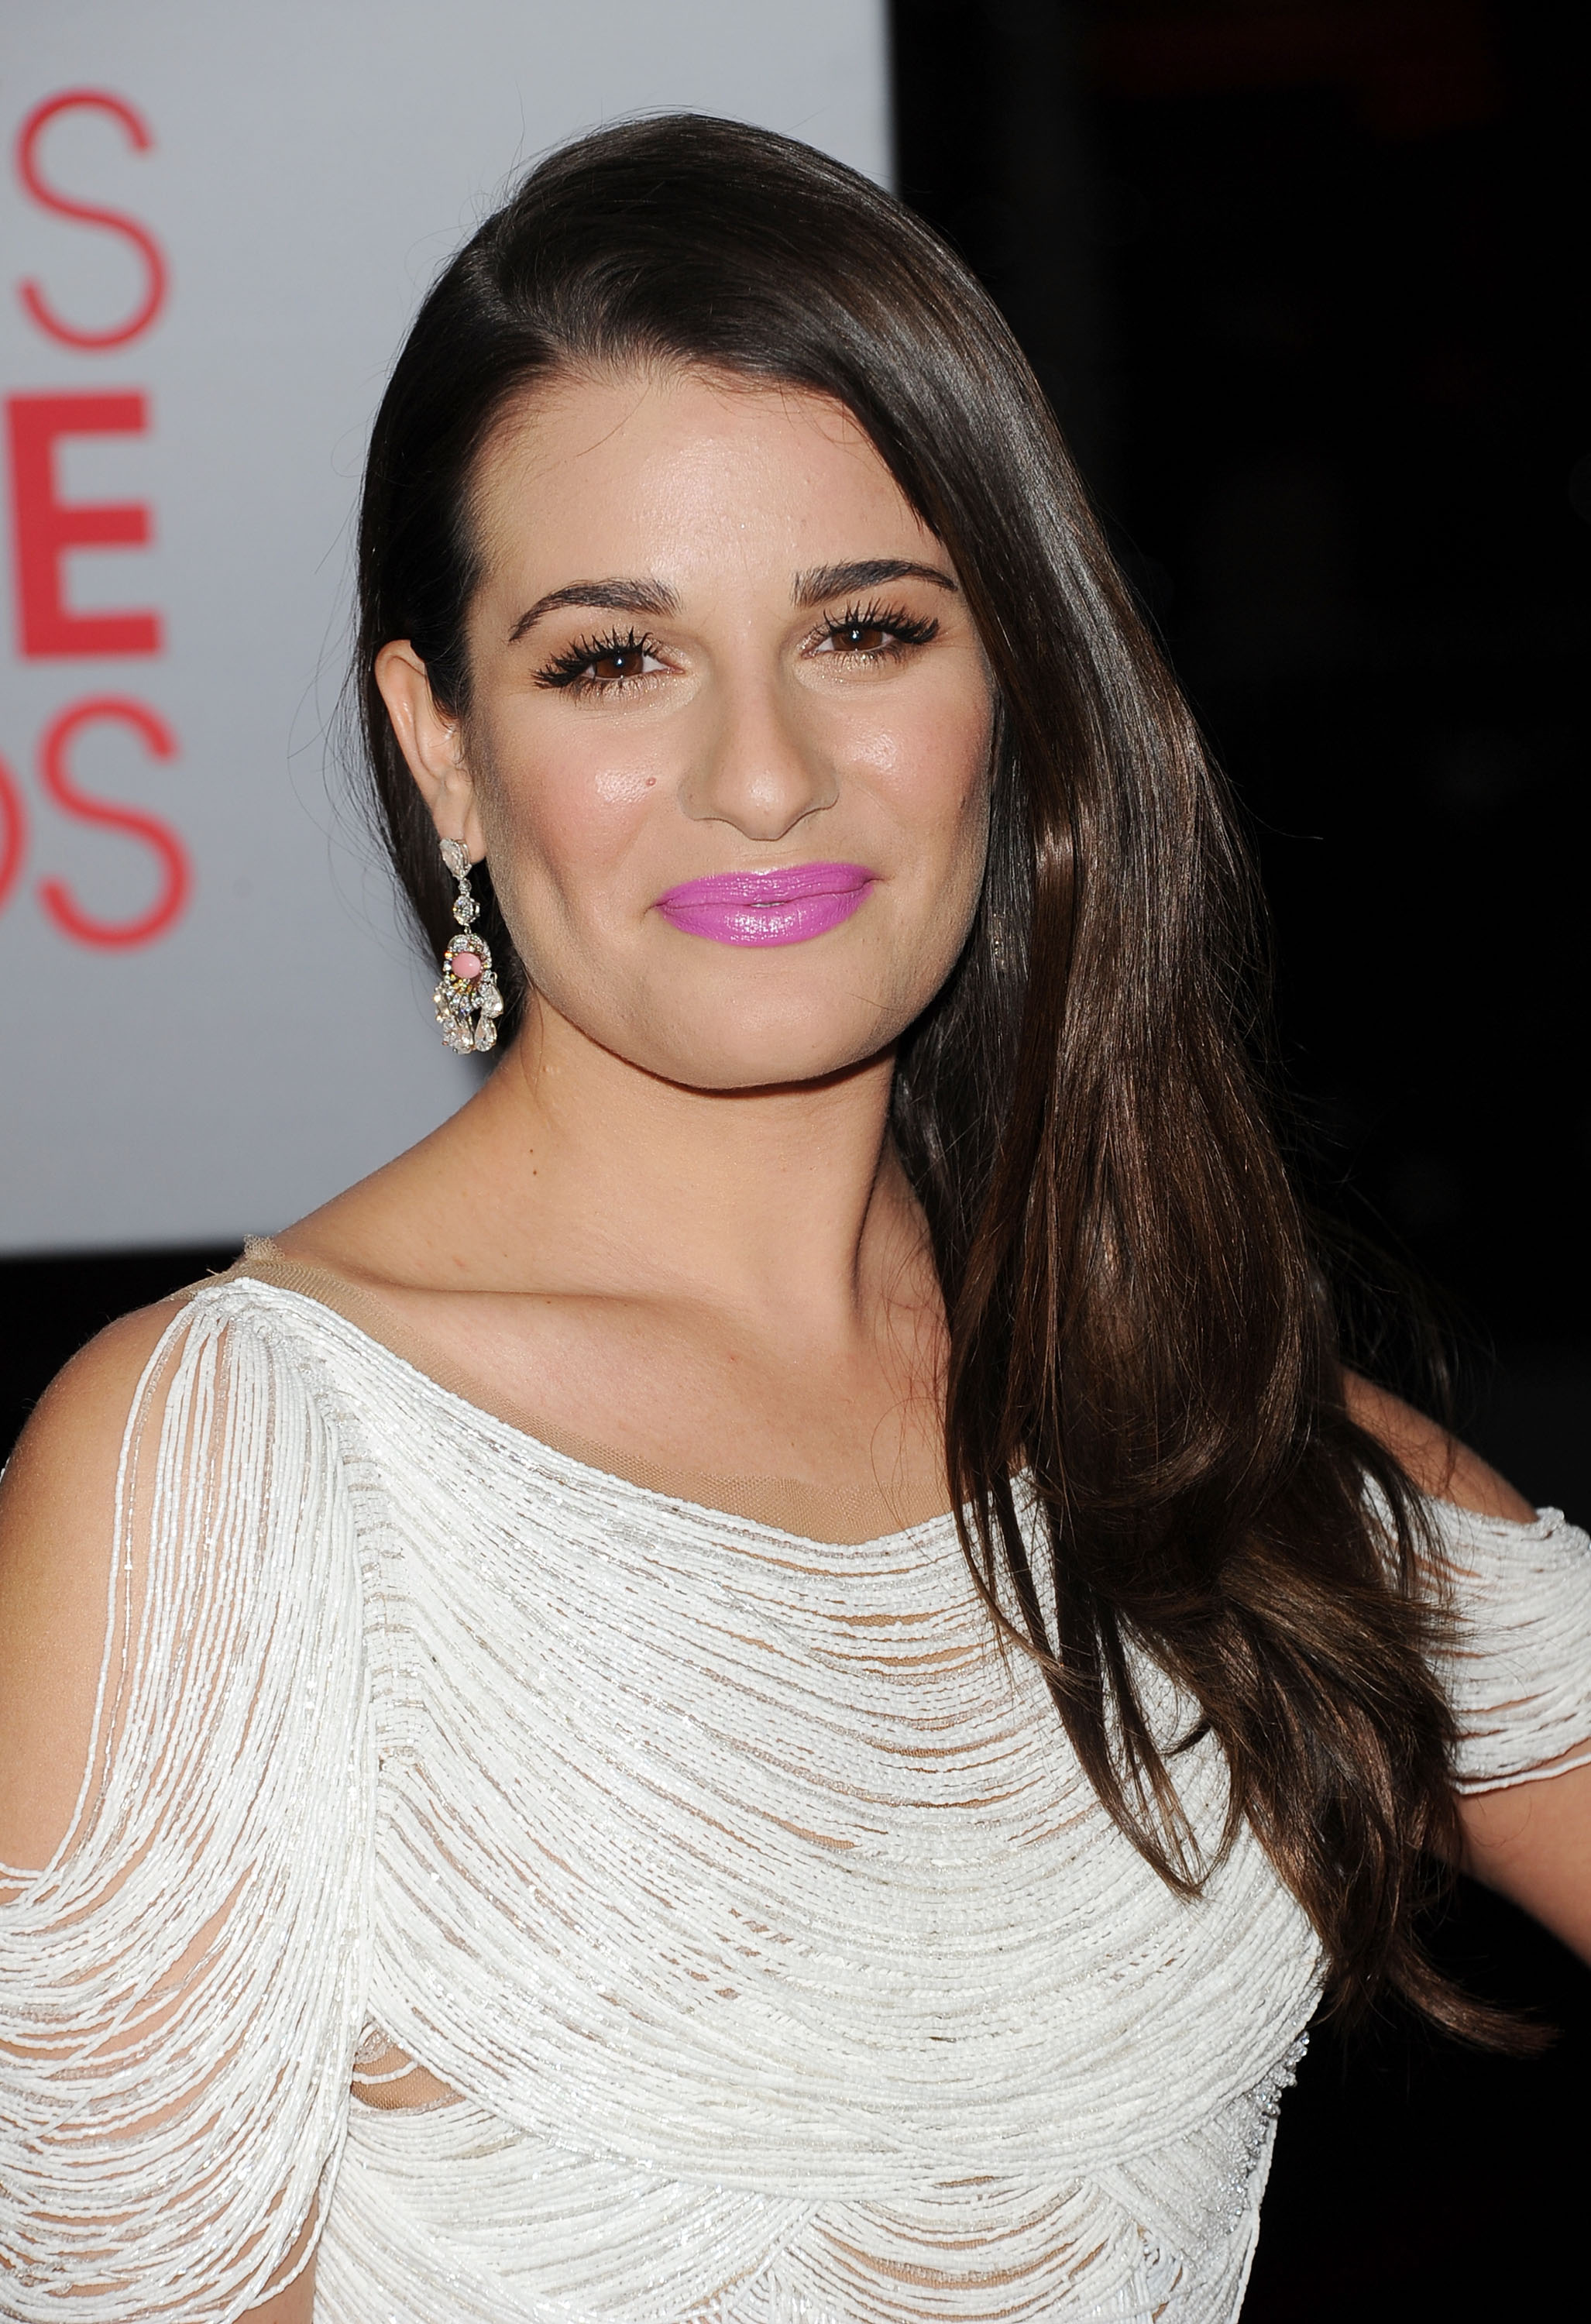 Lea Michele had pink lips on the red carpet.